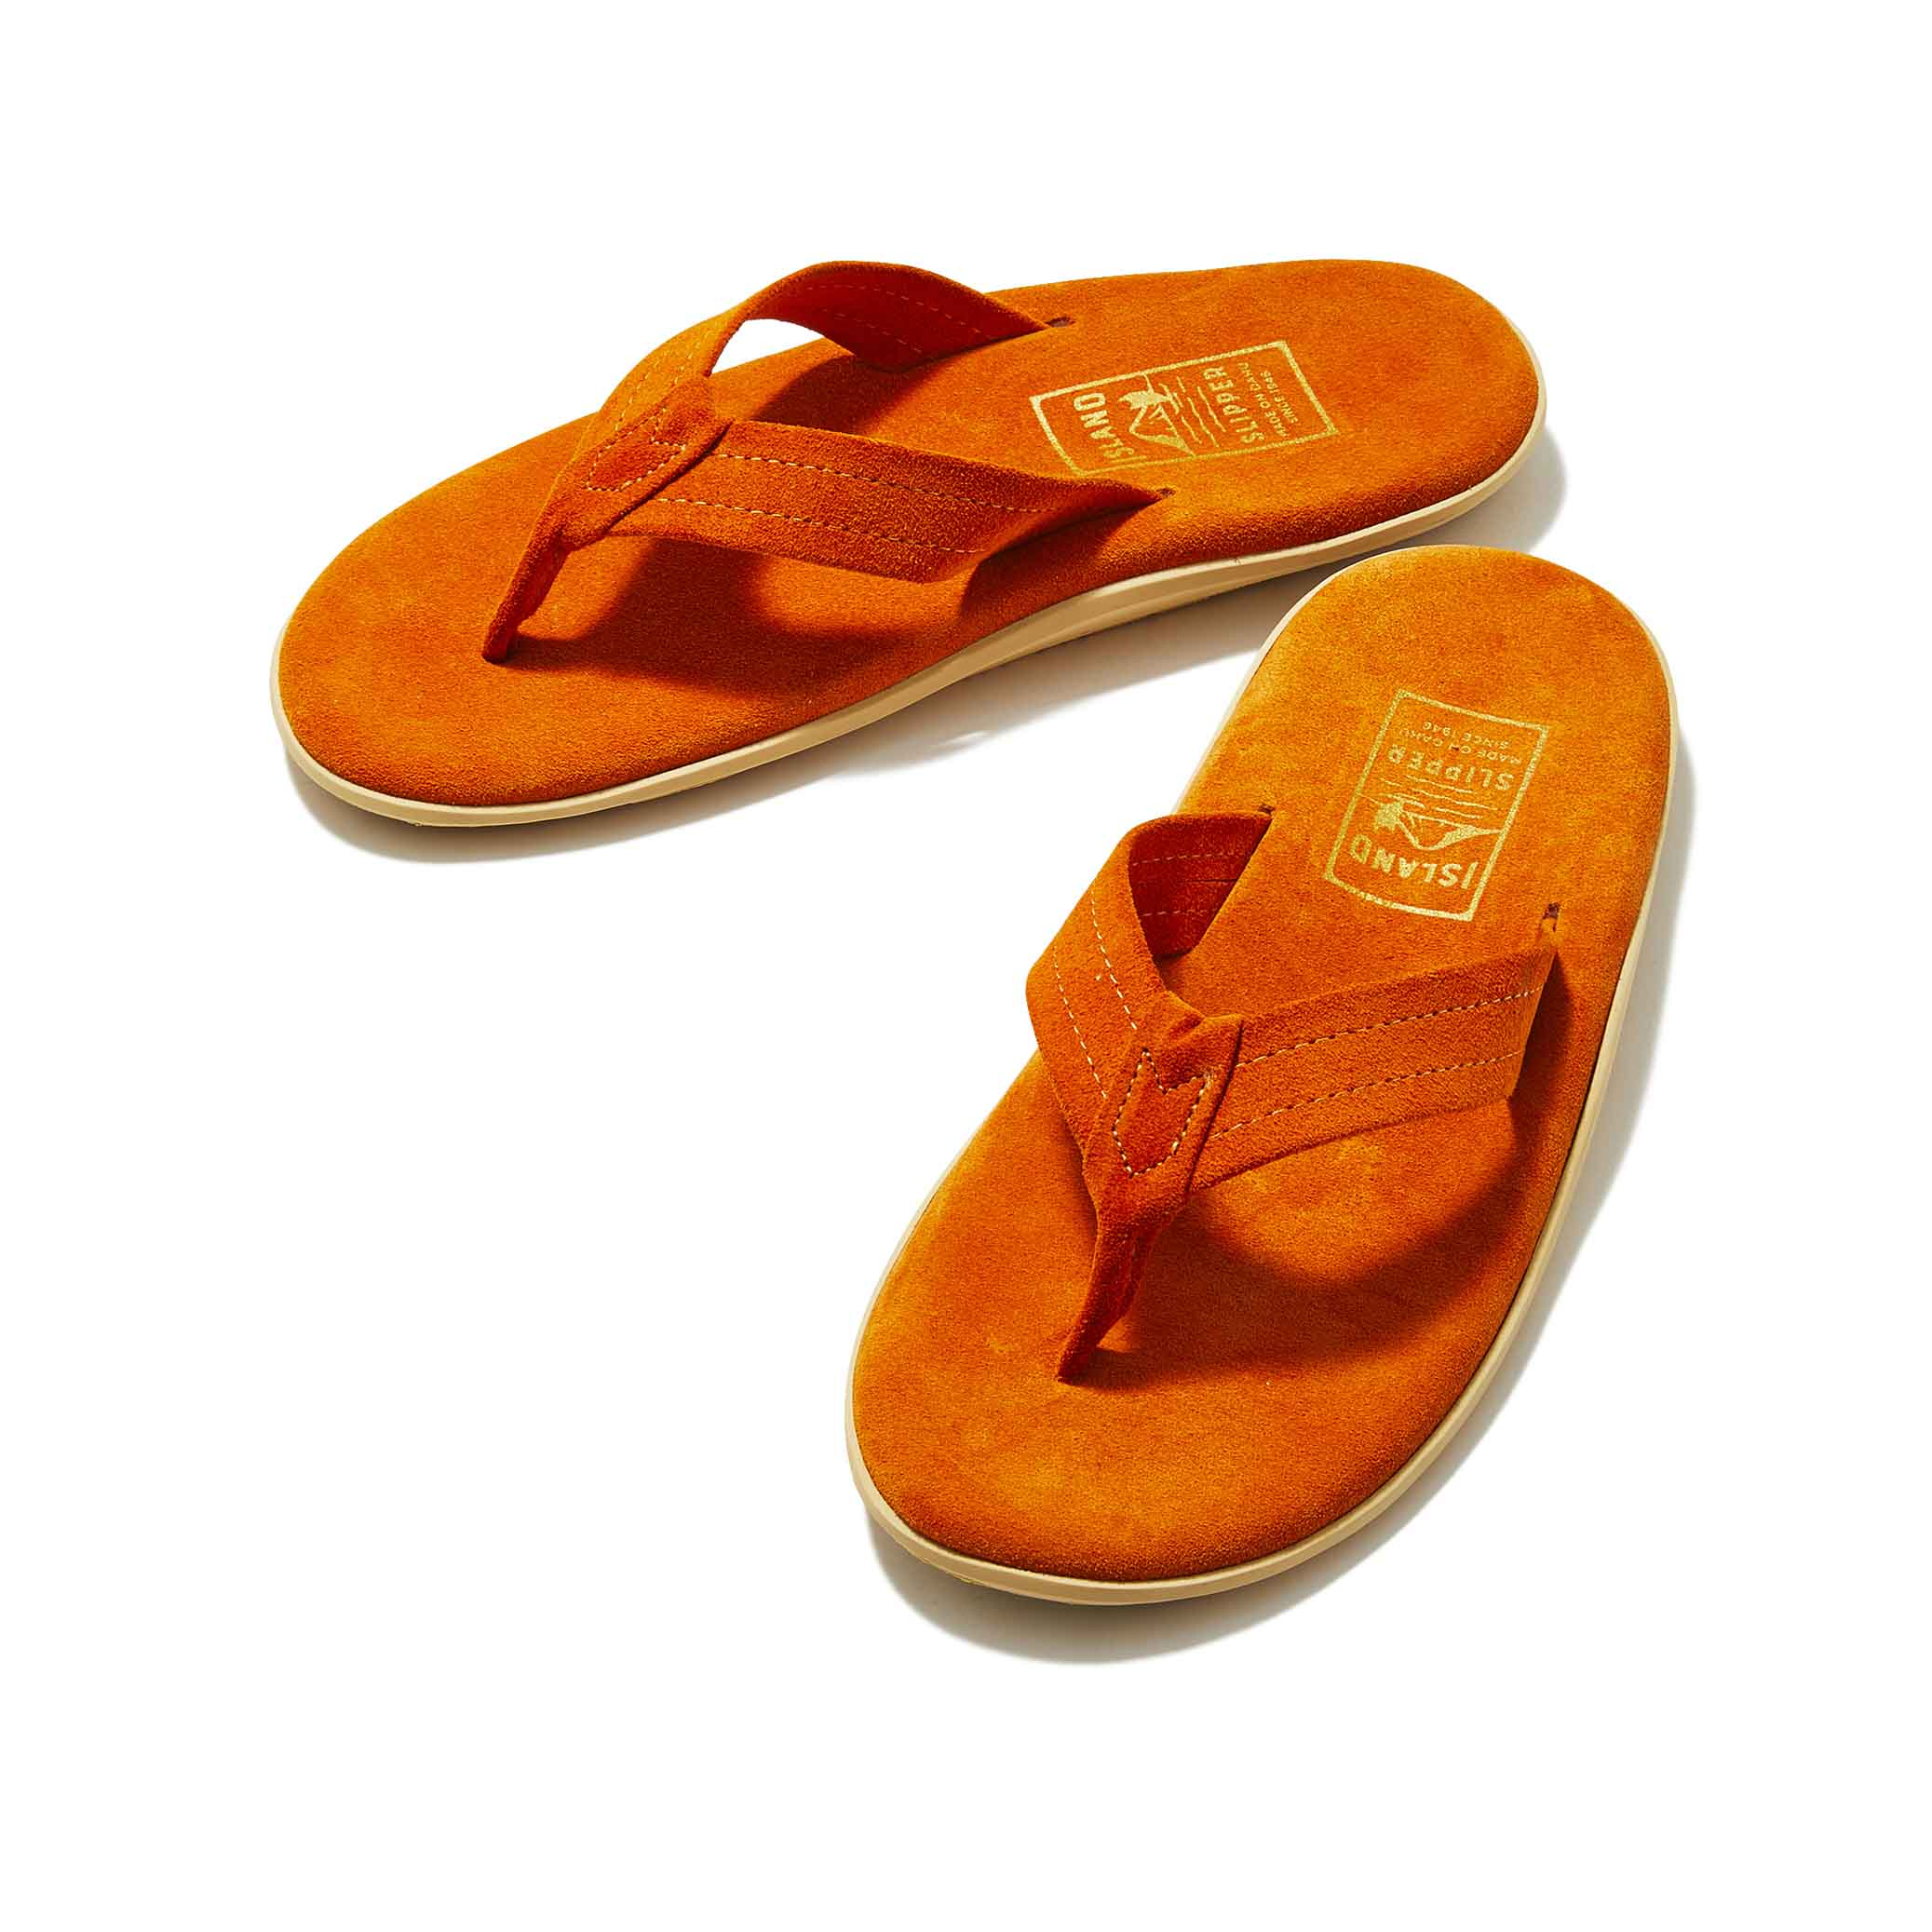 Island Slipper Pre-Order; Classic Suede Orange Thong